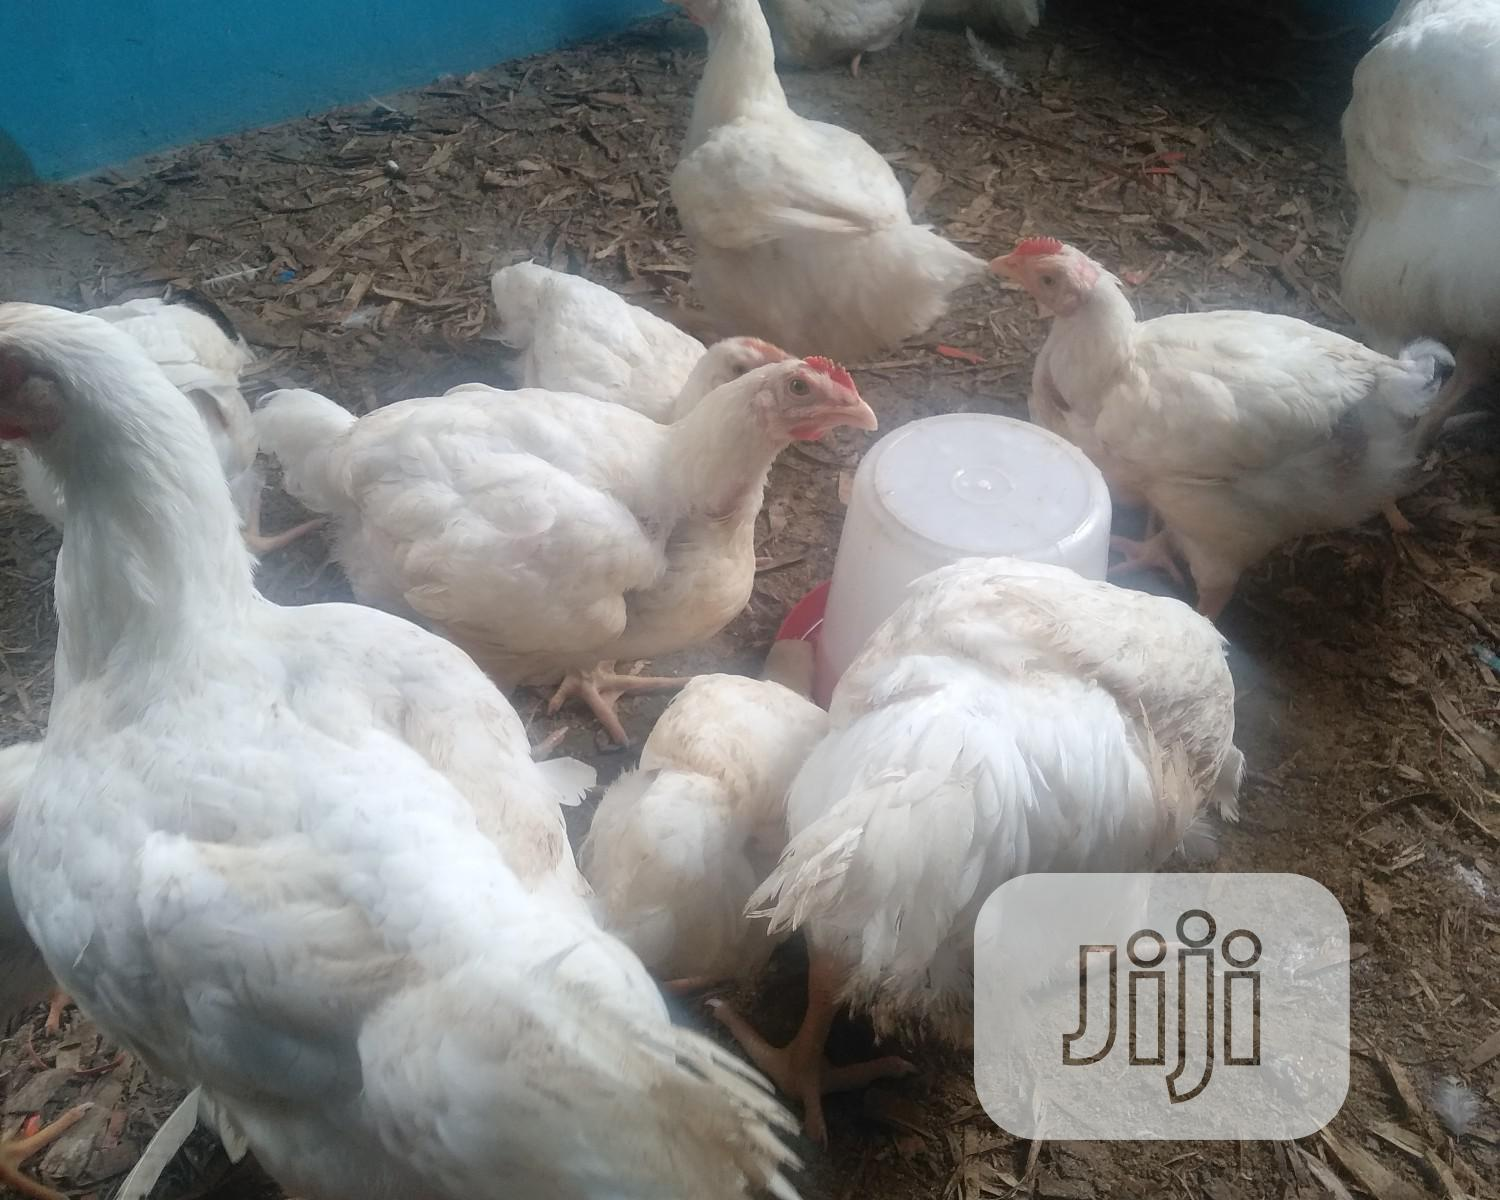 Archive: Organically Bred Live Chickens For Sale (#1,000 Per Kg)